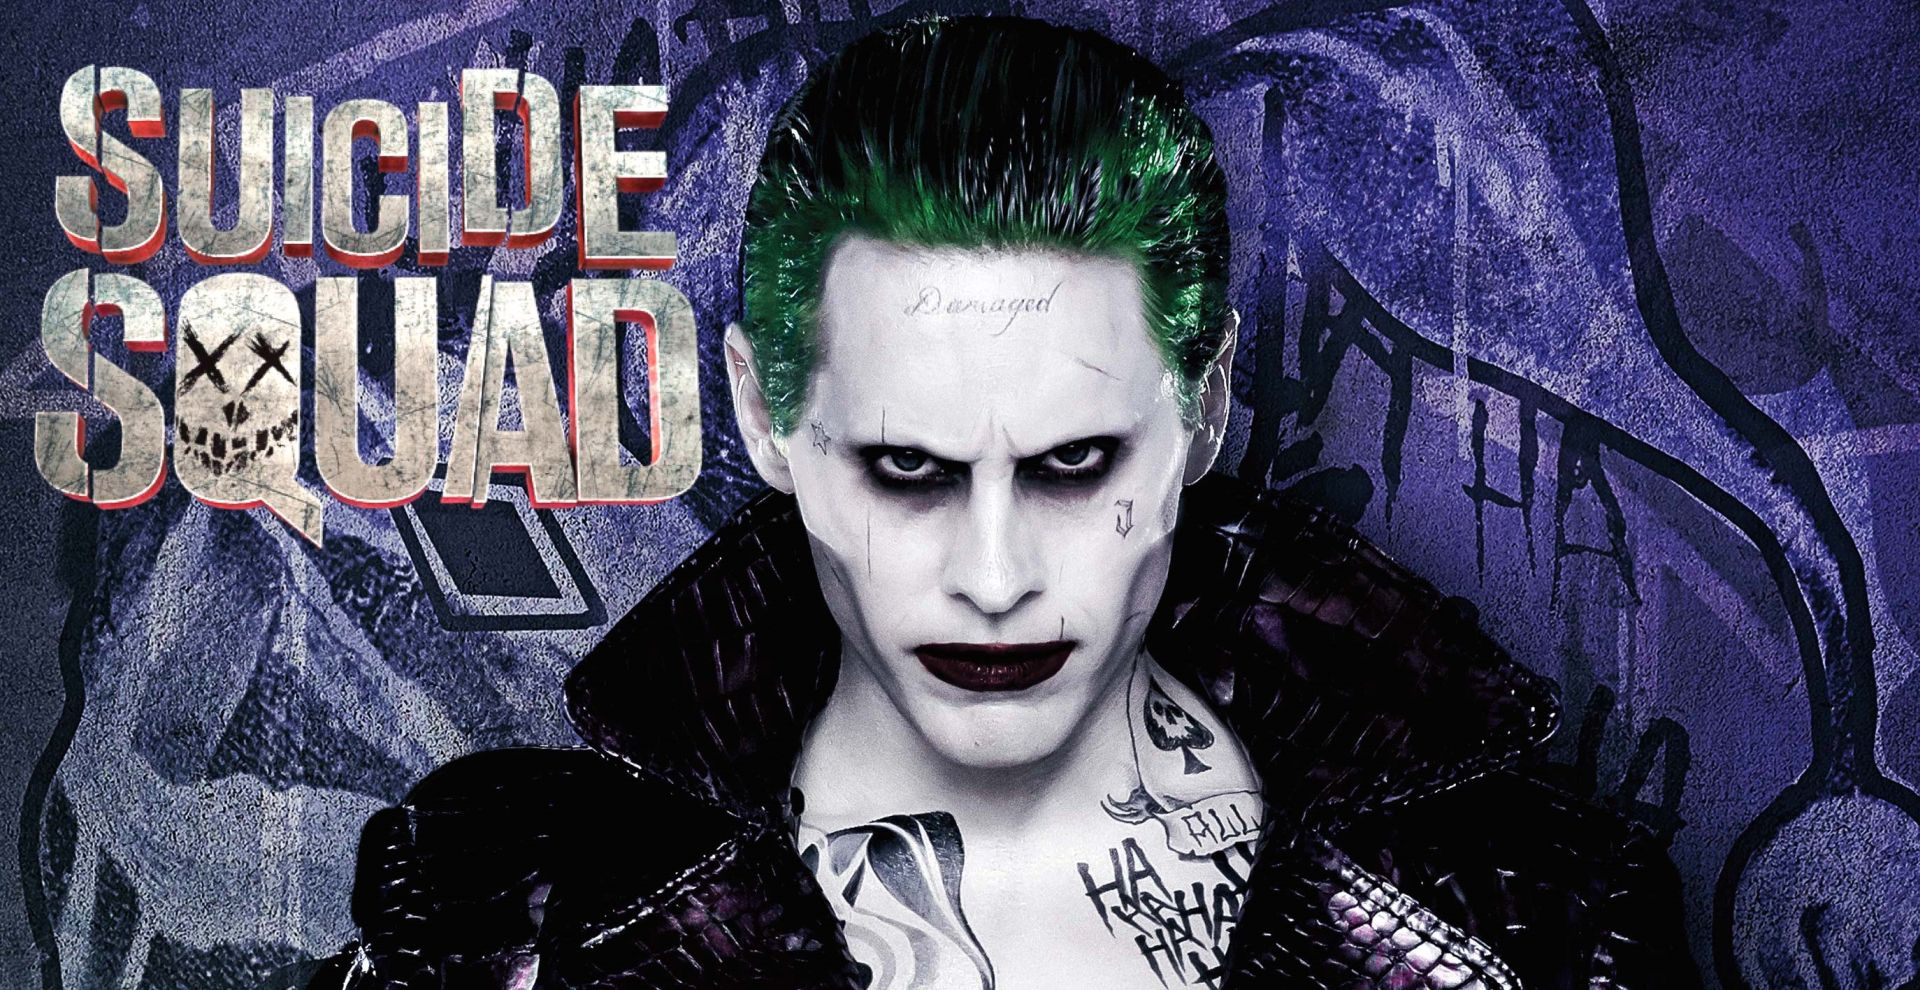 Suicide Squad Joker, Free Wallpaper and Background